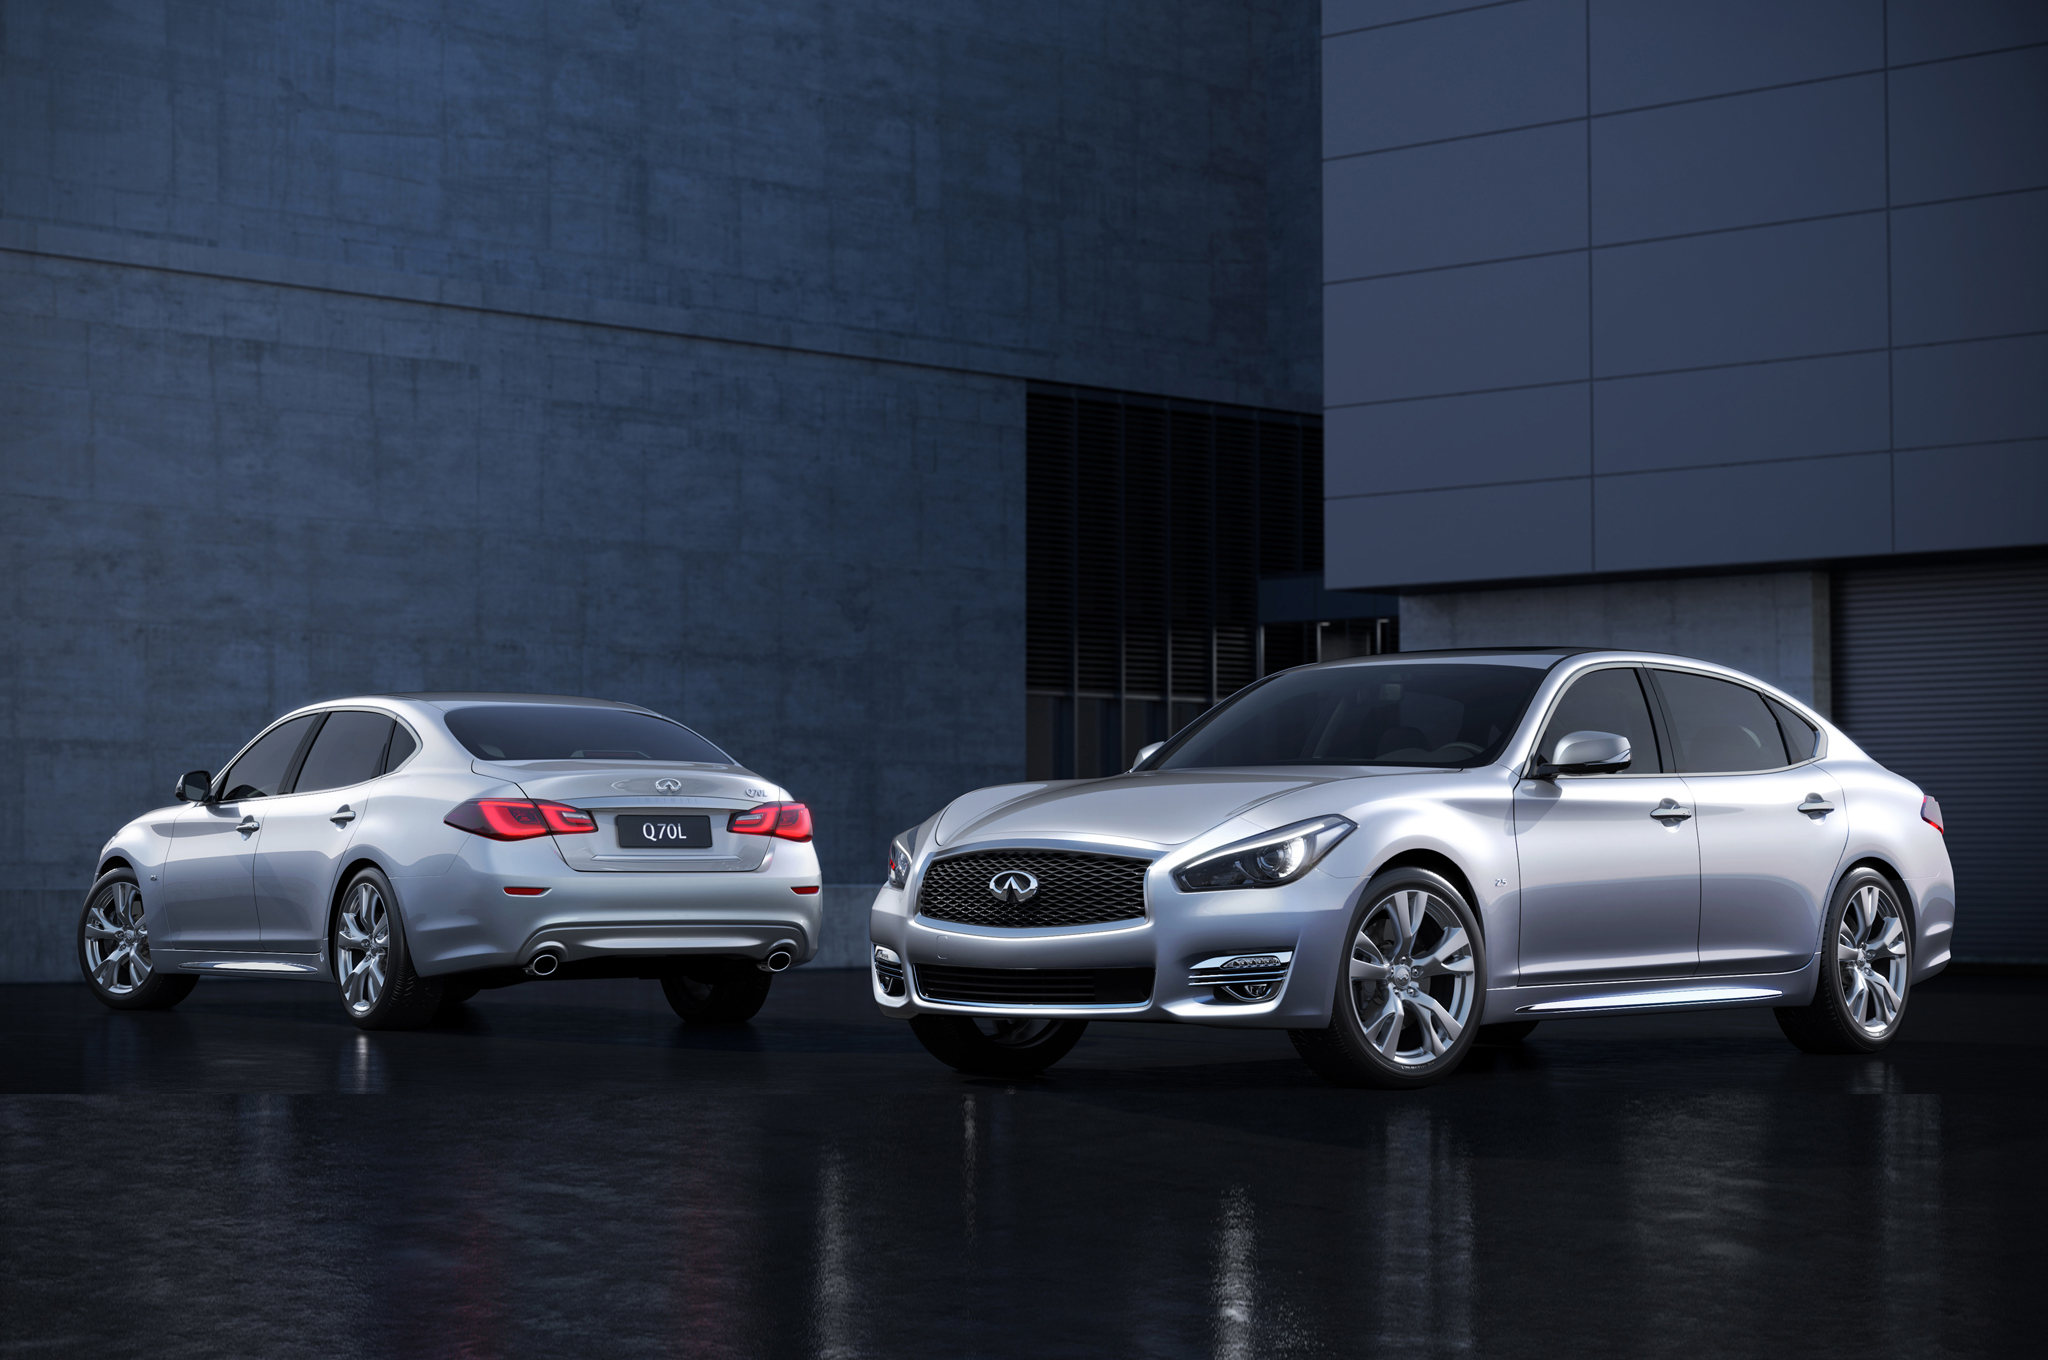 infiniti q70l bespoke edition adds quilted leather executive seating. Black Bedroom Furniture Sets. Home Design Ideas